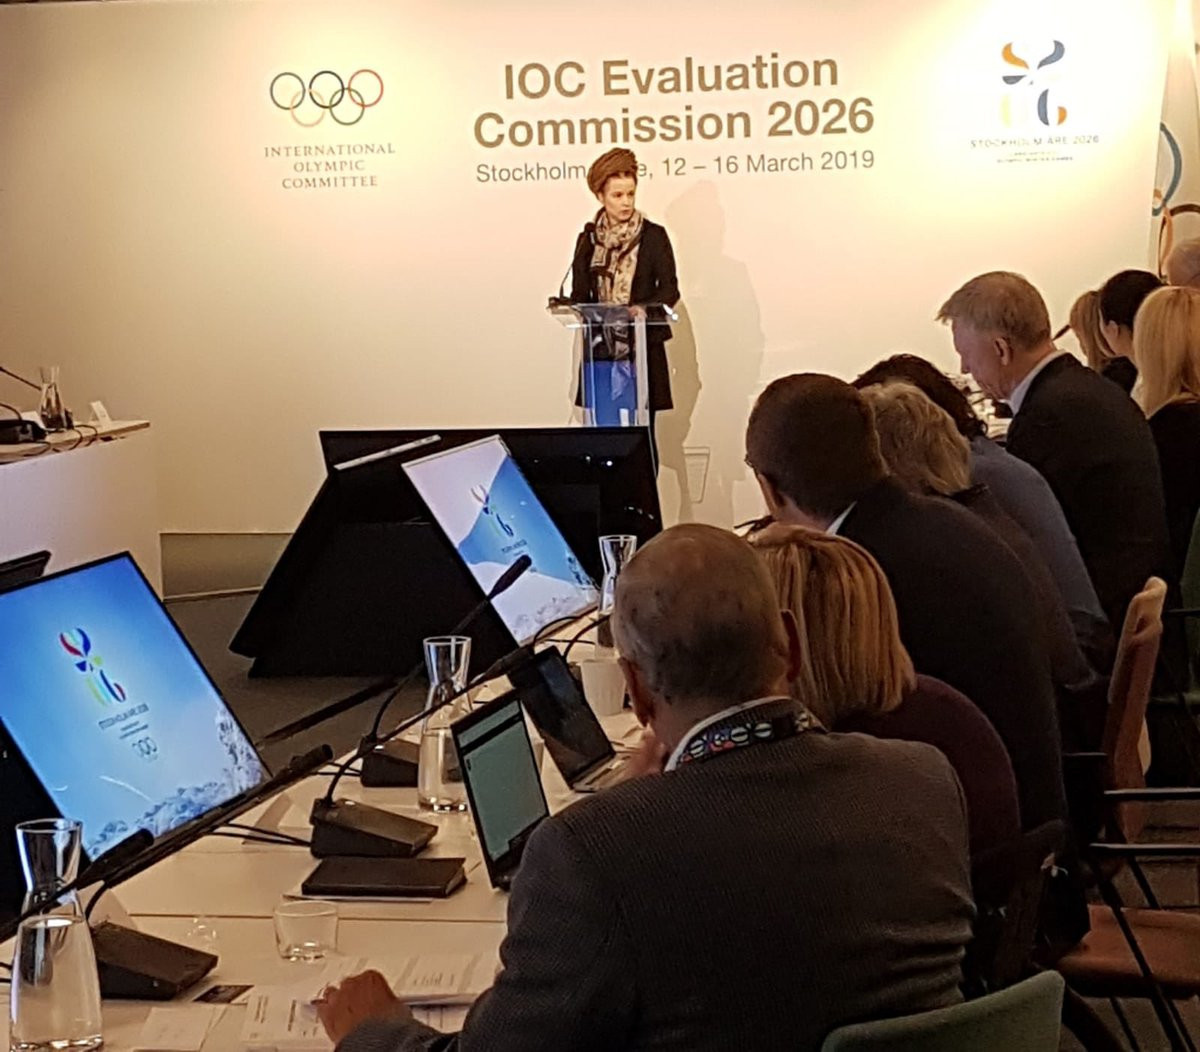 Sweden's Minister of Culture and Sport Amanda Lind addressed the IOC Evaluation Commission today during their inspection of Stockholm Åre 2026 ©IOC